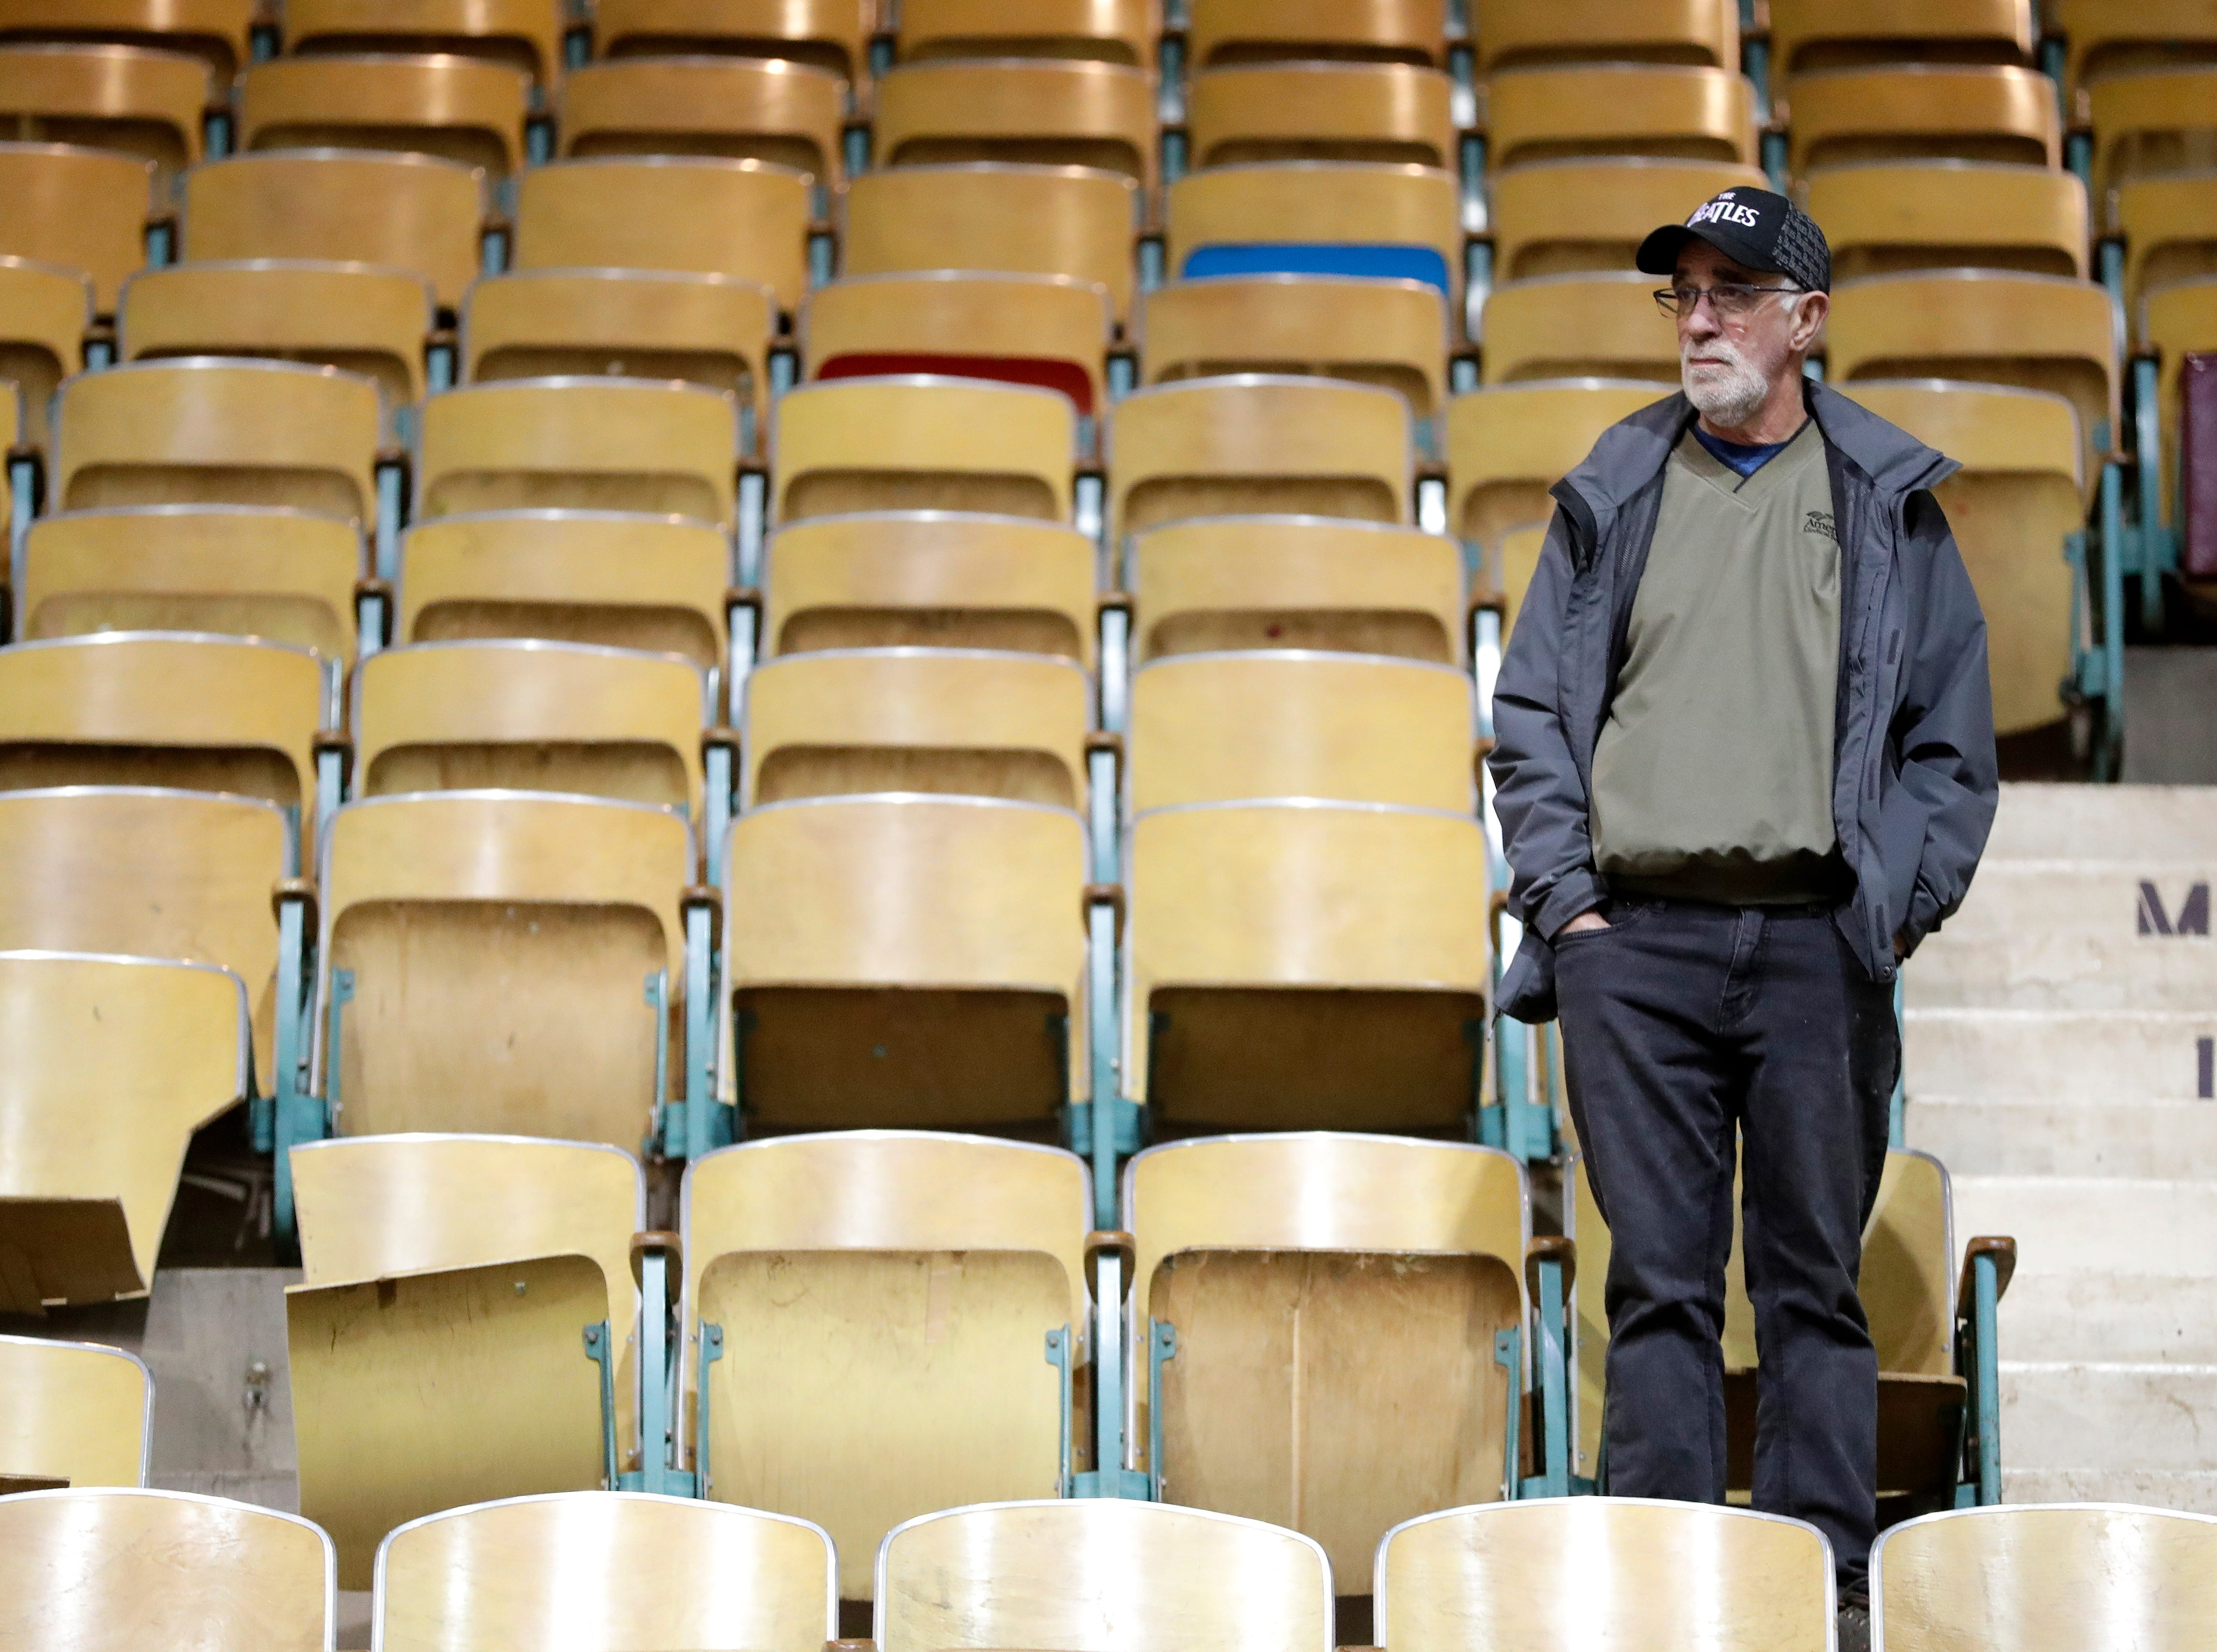 Green Bay resident Tom Thomas looks around the Brown County Veterans Memorial Arena from the seating area one last time during a farewell ceremony on April 29, 2019 for the soon-to-be demolished building in Ashwaubenon, Wis.